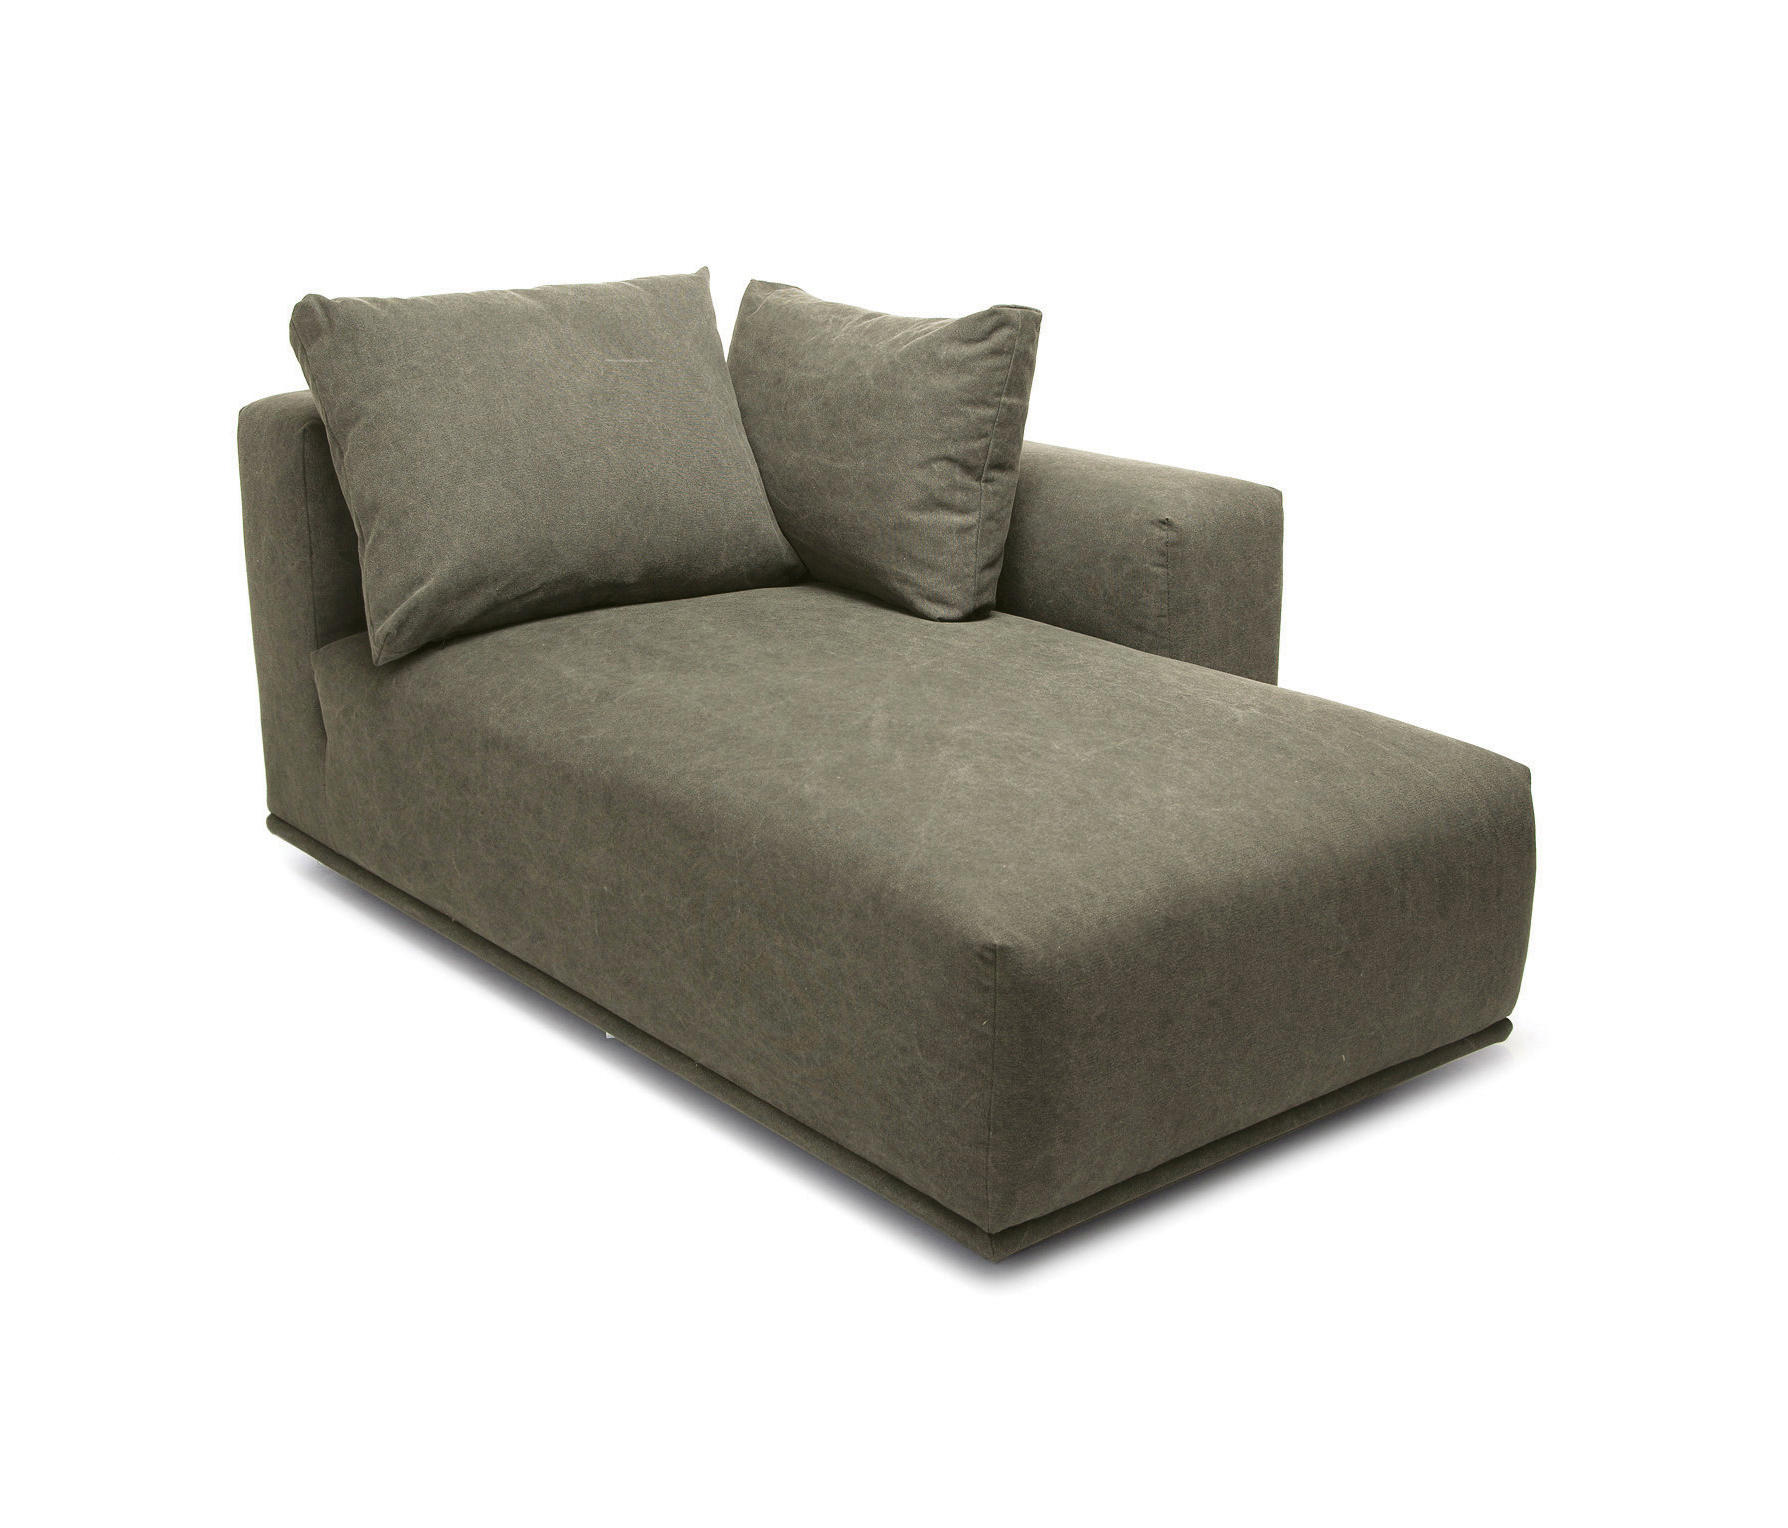 madonna sofa chaise longue left canvas washed green 156. Black Bedroom Furniture Sets. Home Design Ideas